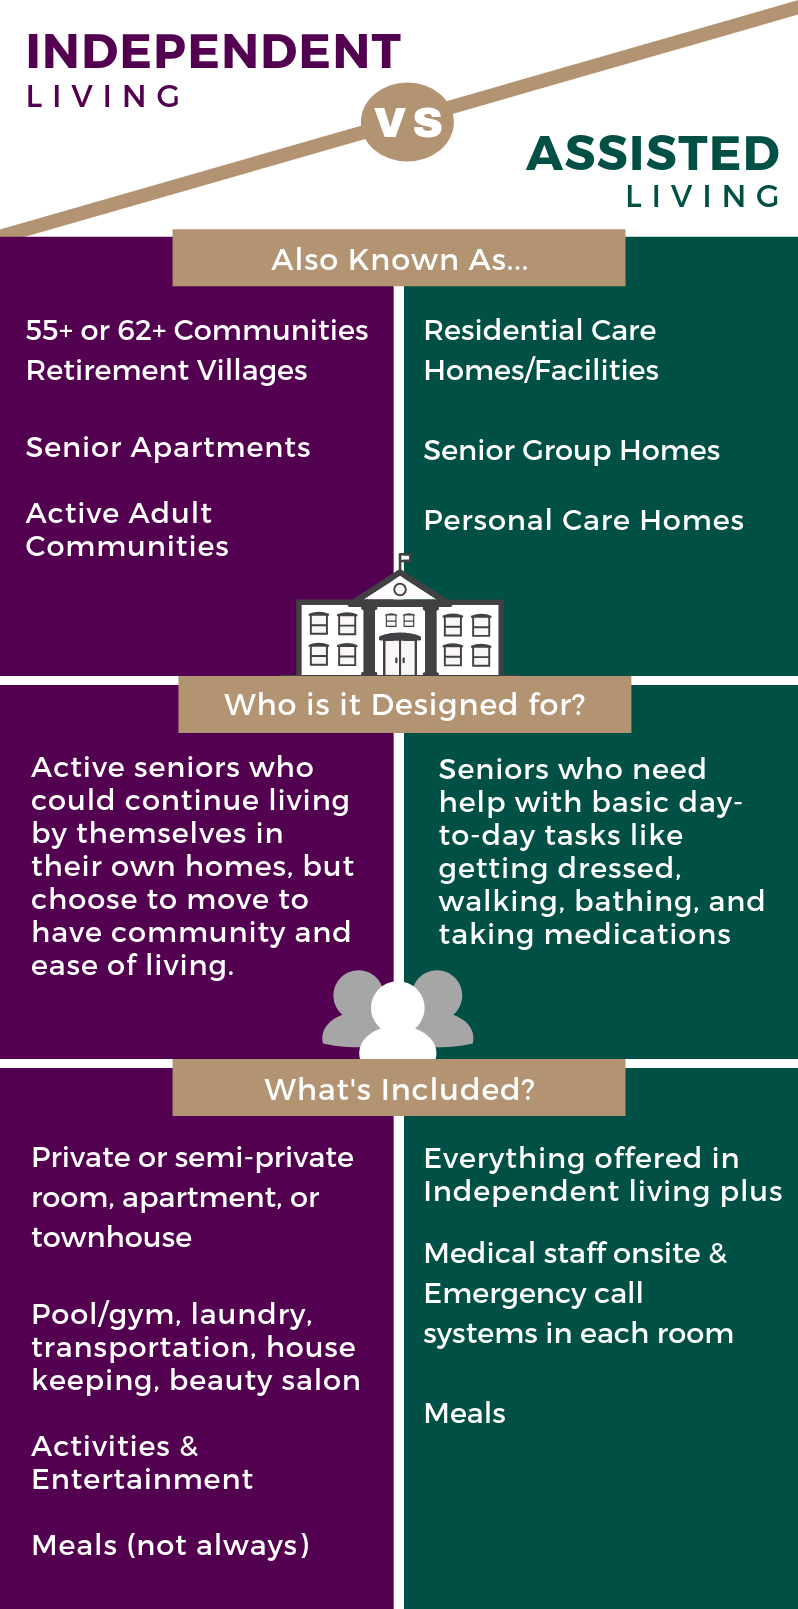 DS - VG Independent vs Assisted Living Infographic